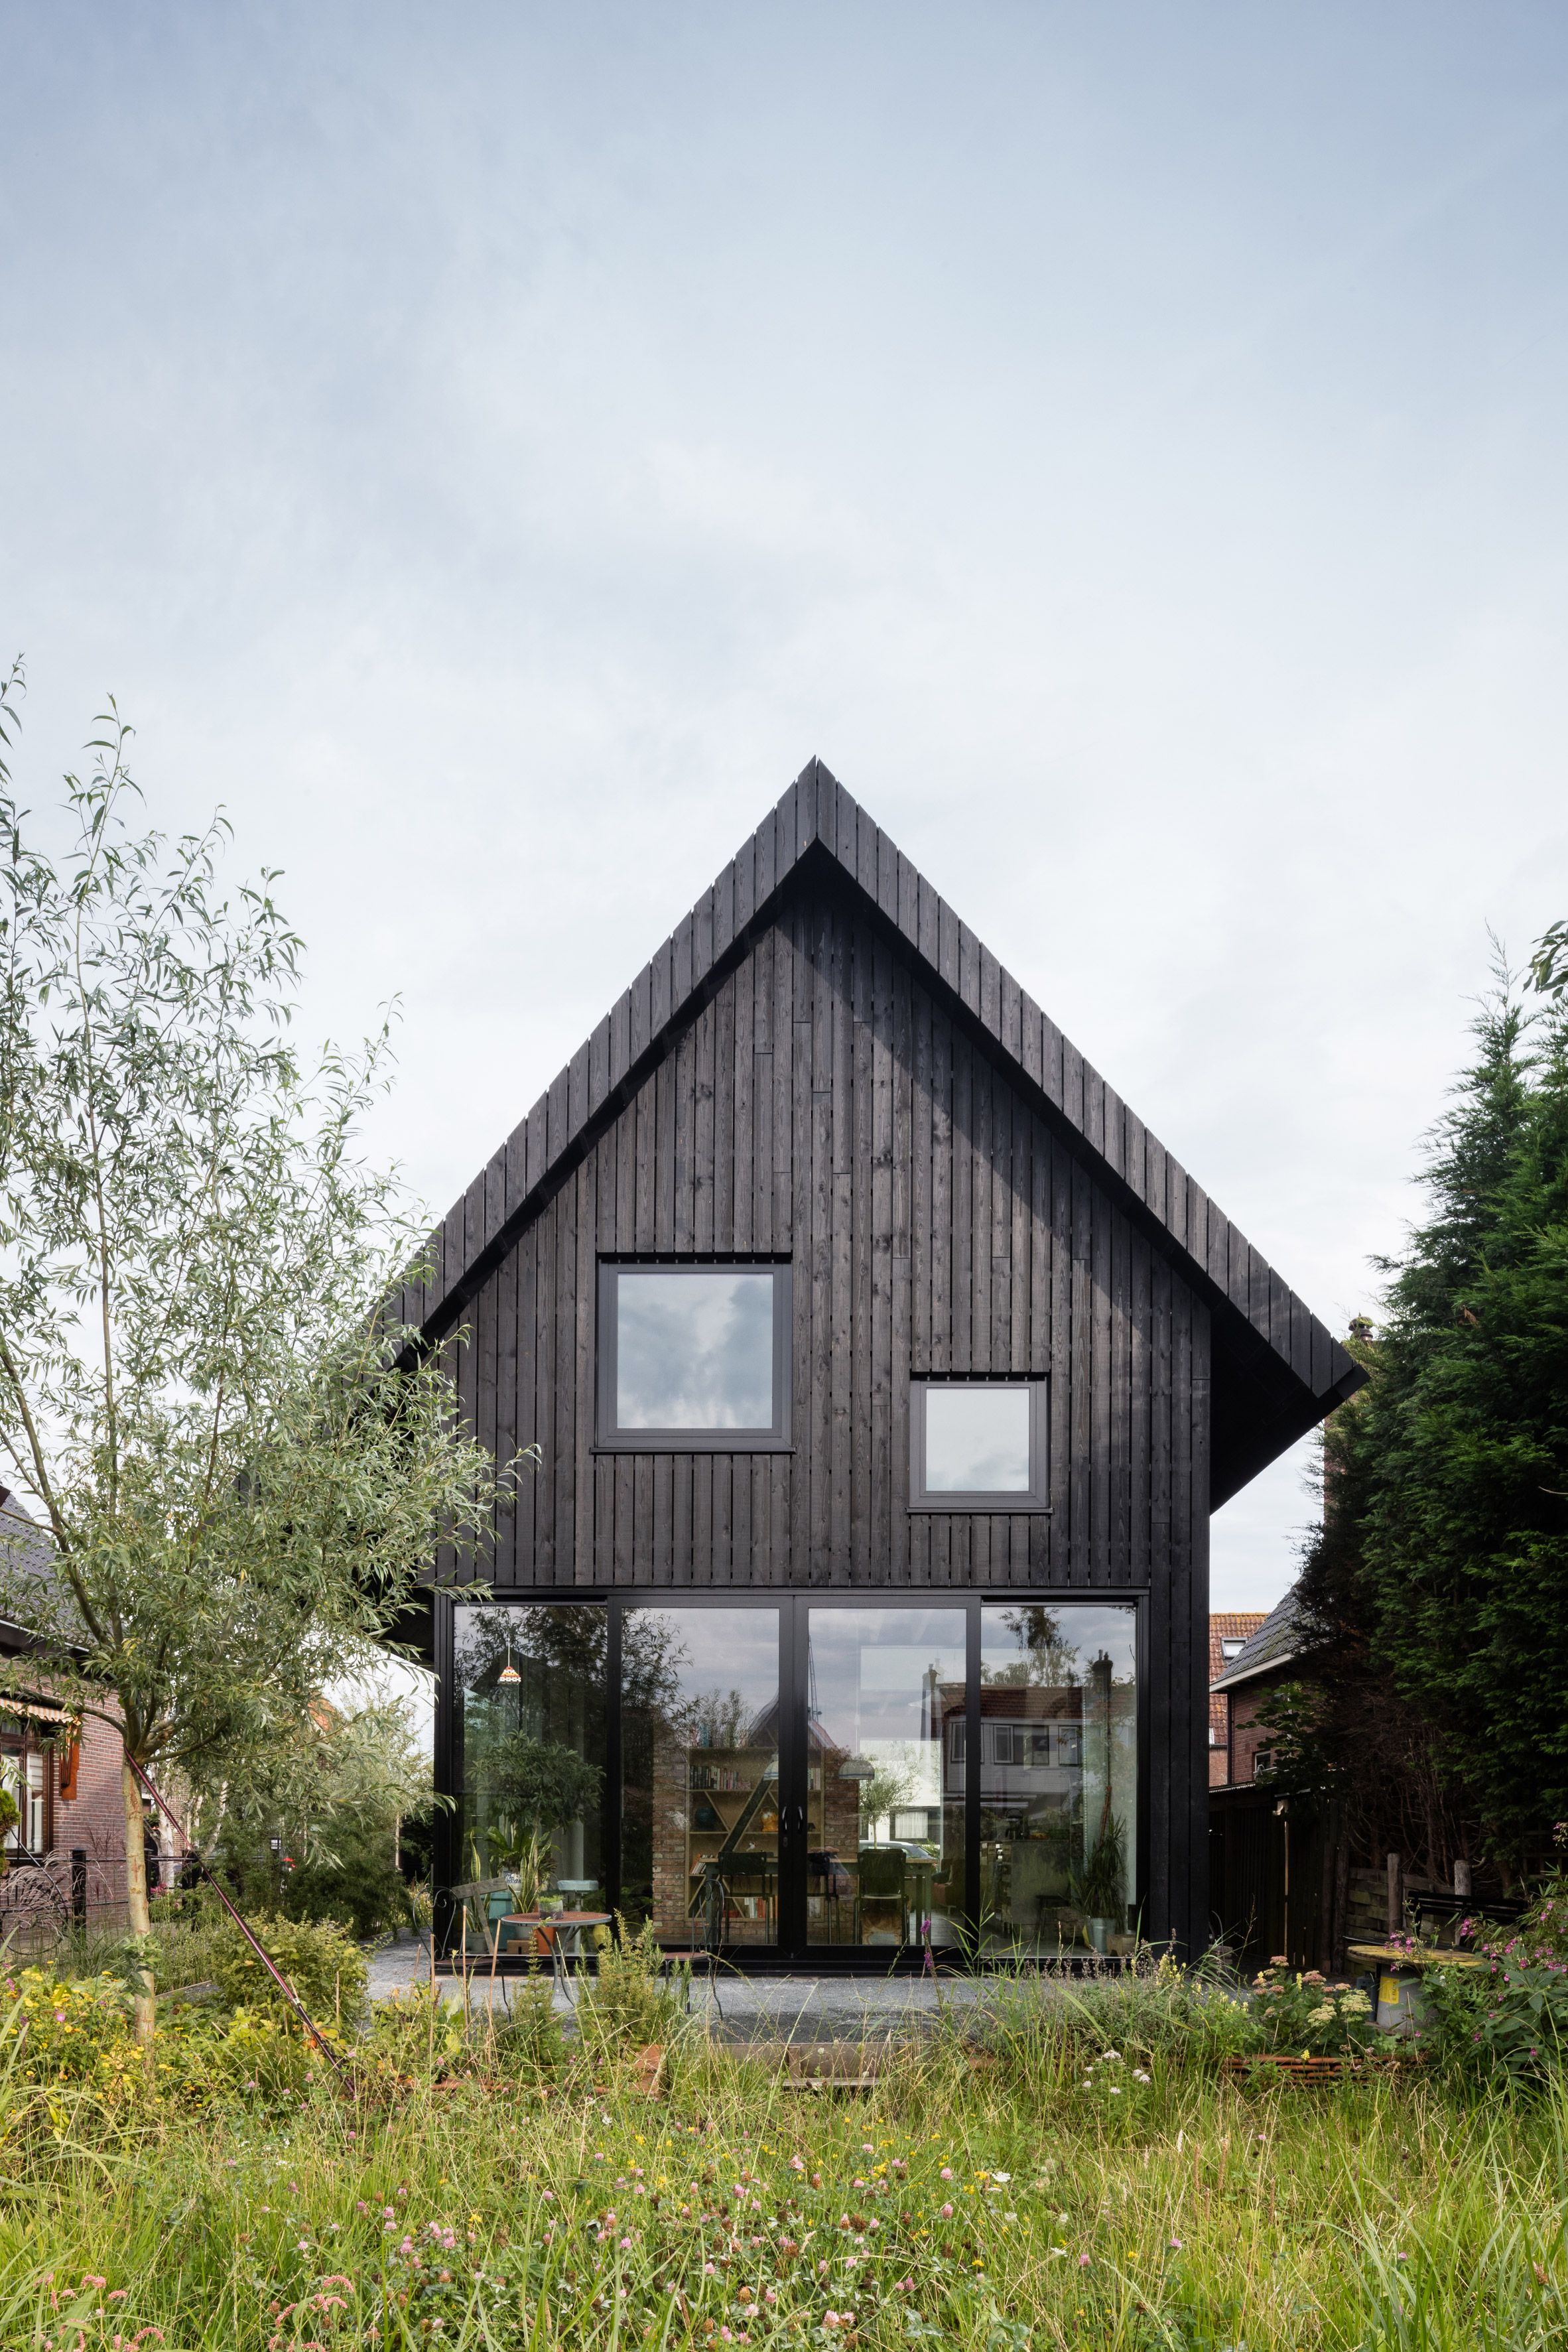 Dutch Architect Chris Collaris Has Completed A House In Amsterdam Clad Entirely In Blackened Timber And Wooden Cottage Cottage House Designs House In The Woods